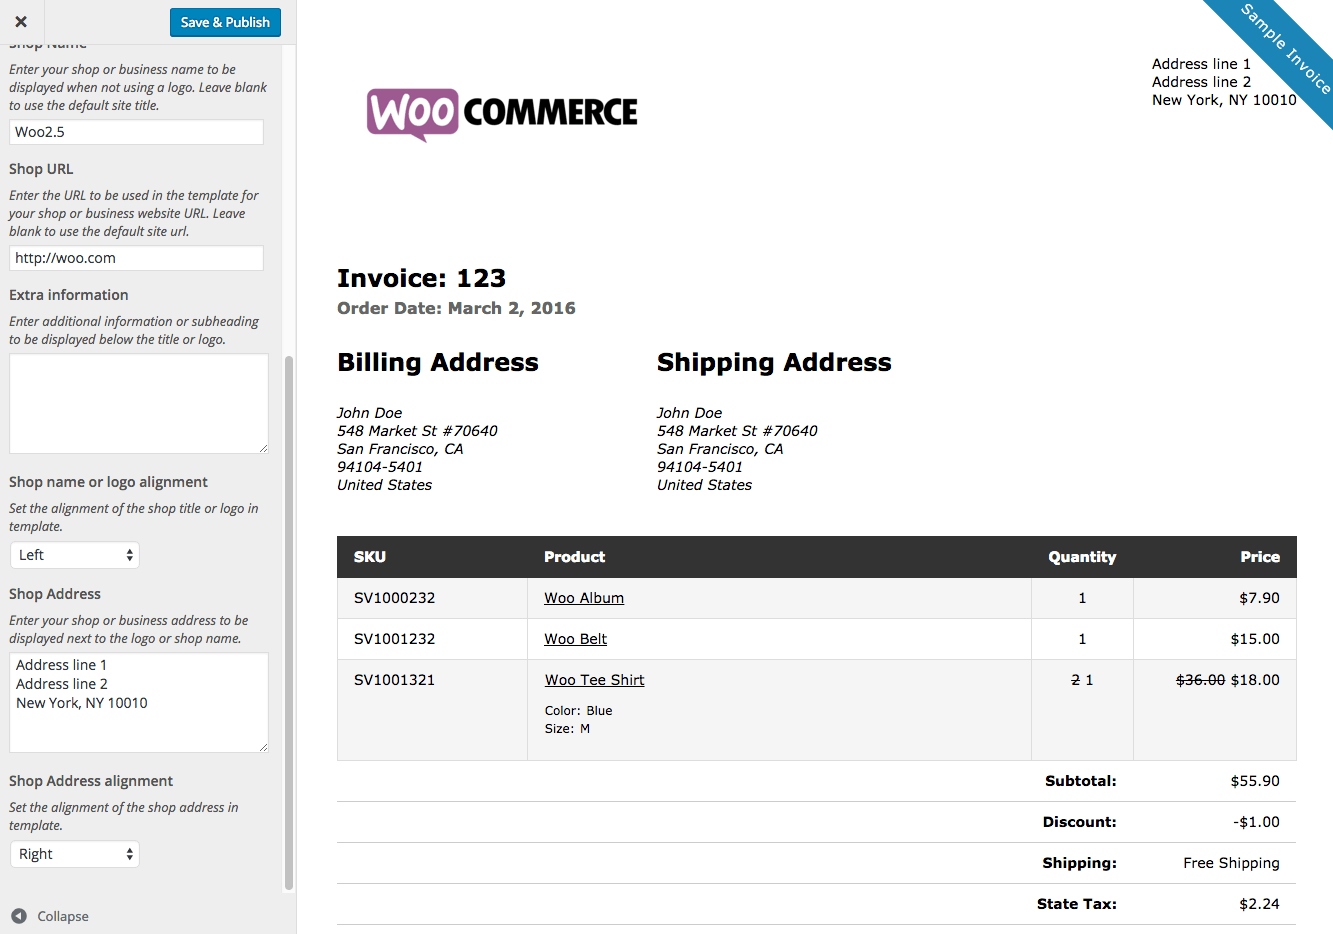 Weirdmailus  Prepossessing Woocommerce Print Invoices Amp Packing Lists  Woocommerce Docs With Hot Woocommerce Print Invoices  Packing Lists Customizer With Cool How To Use Neat Receipts Also How To Print Fake Receipts In Addition Babies R Us No Receipt Return Policy And What Can You Claim On Taxes Without Receipt As Well As Receipt Sample Form Additionally Tourism Receipts From Docswoocommercecom With Weirdmailus  Hot Woocommerce Print Invoices Amp Packing Lists  Woocommerce Docs With Cool Woocommerce Print Invoices  Packing Lists Customizer And Prepossessing How To Use Neat Receipts Also How To Print Fake Receipts In Addition Babies R Us No Receipt Return Policy From Docswoocommercecom